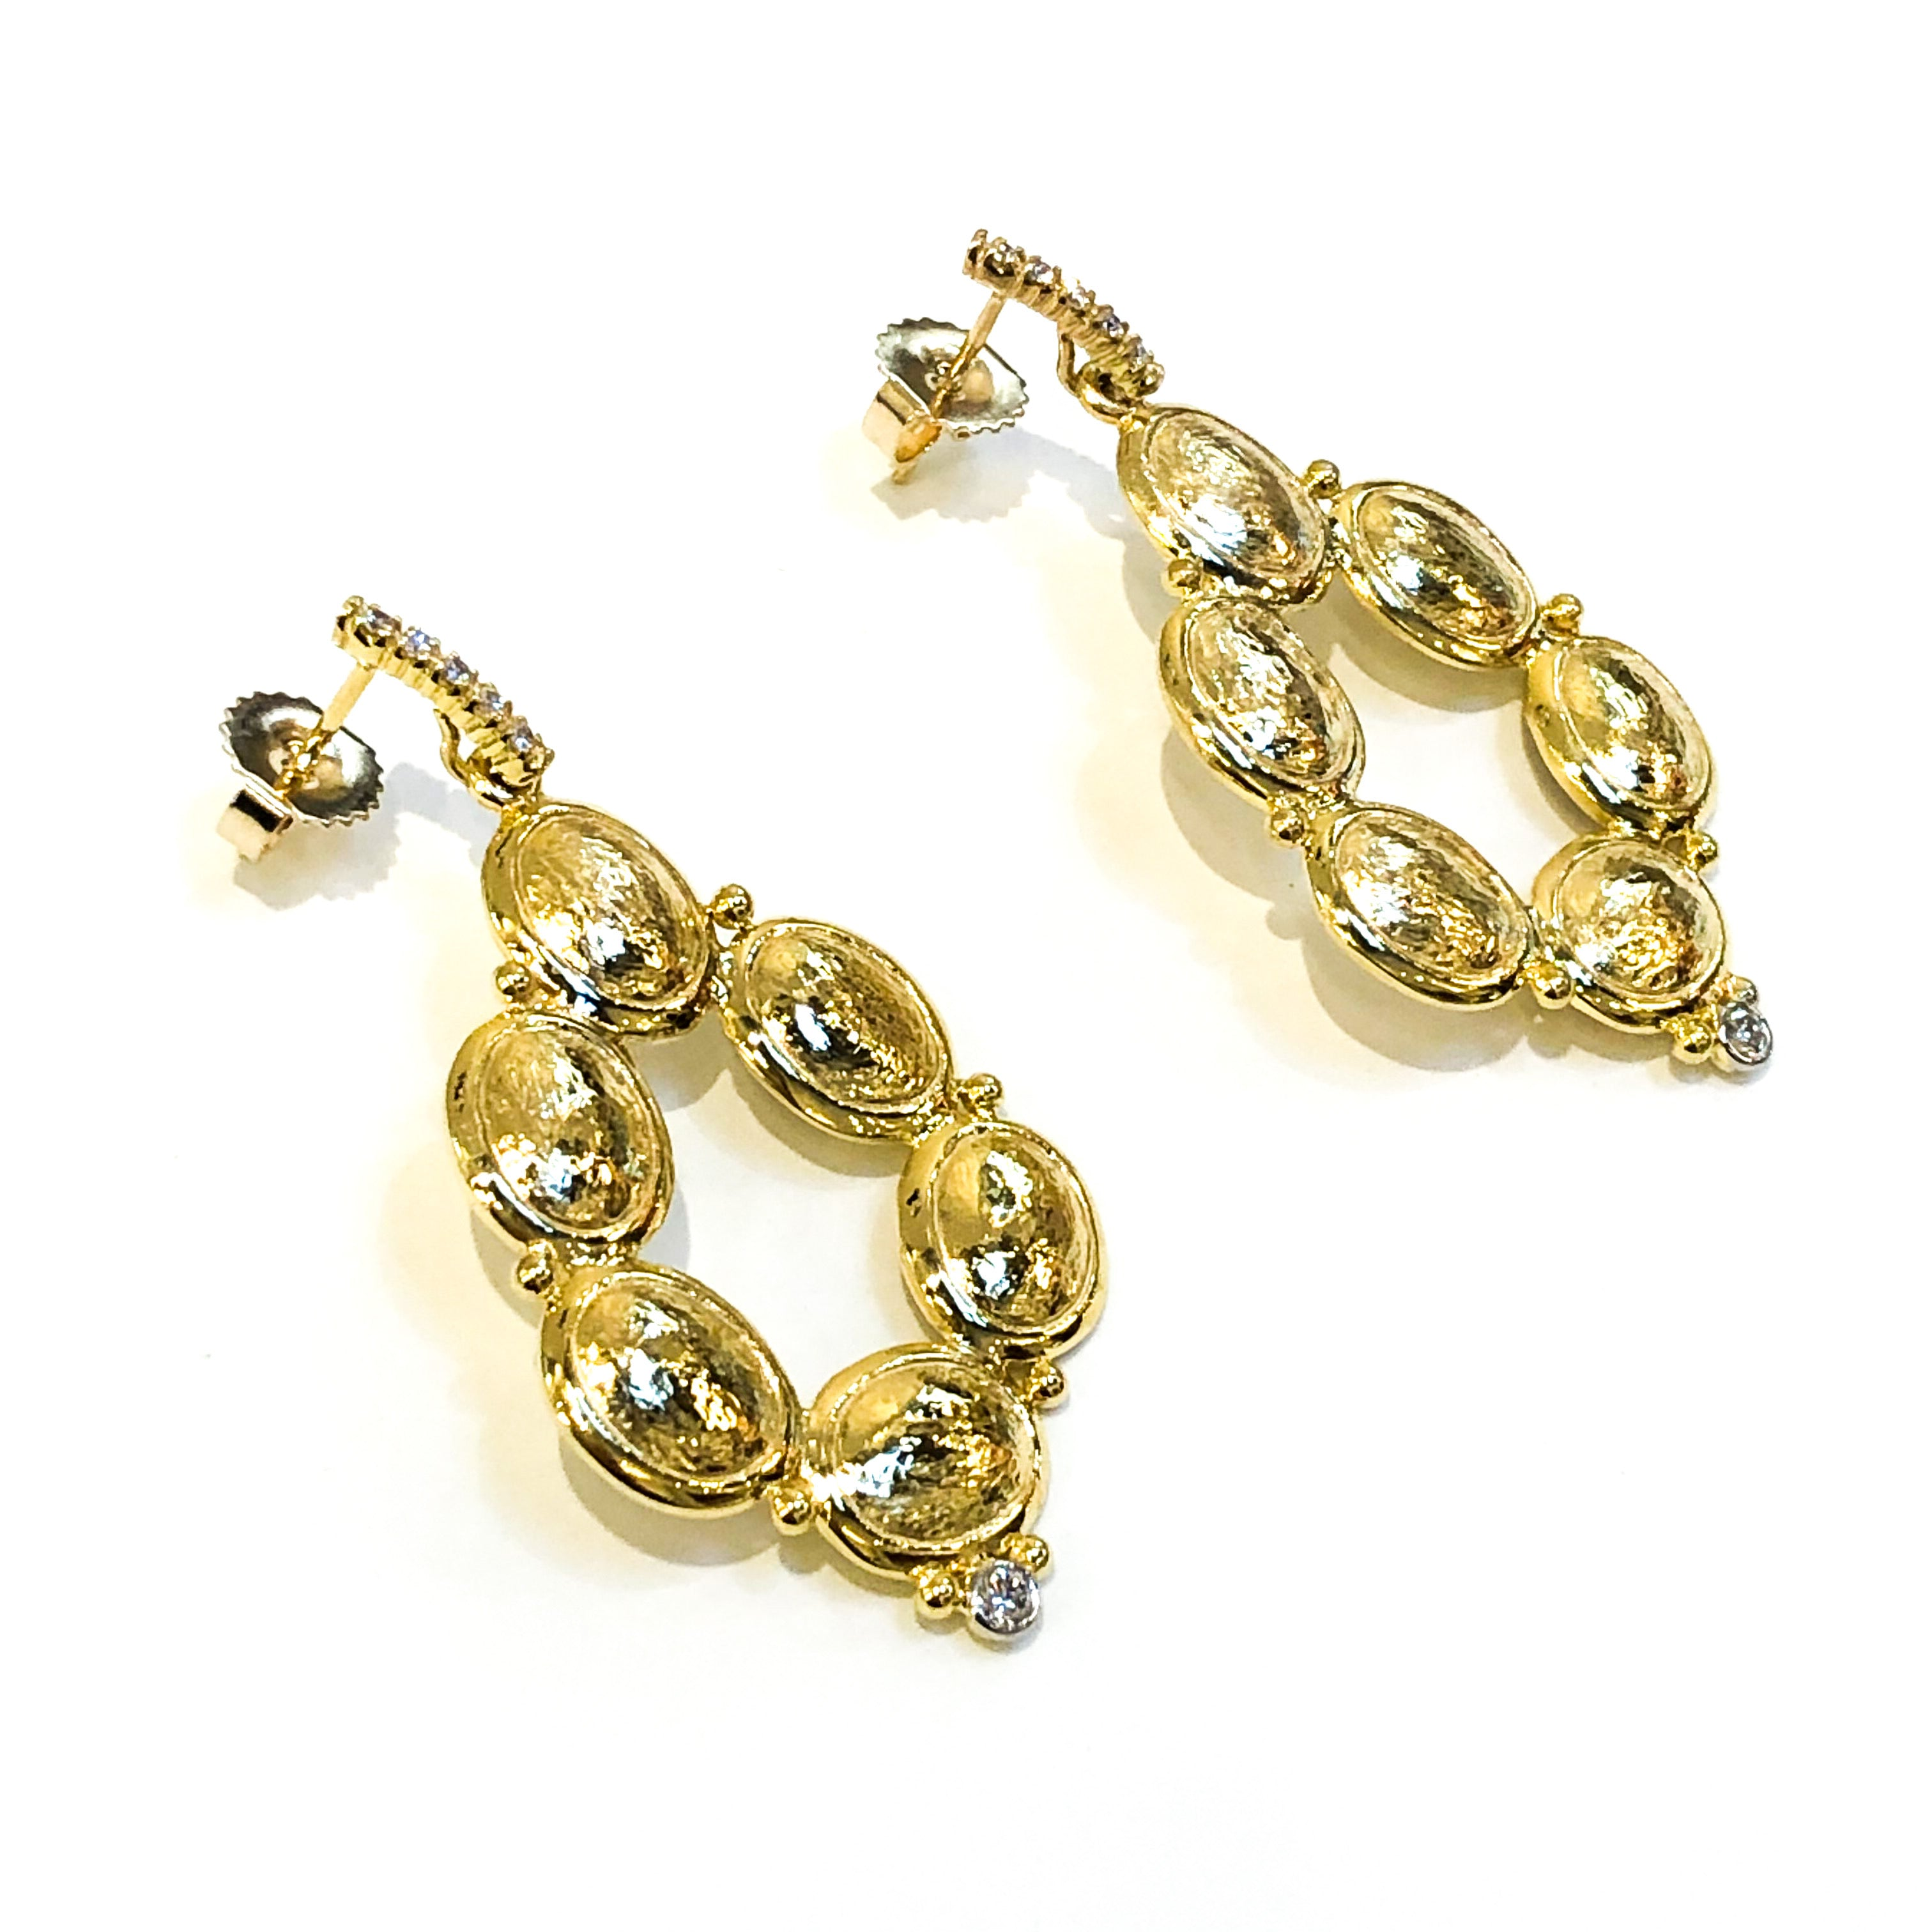 Yellow Gold Drop Earrings with Hammered Finish and Diamonds